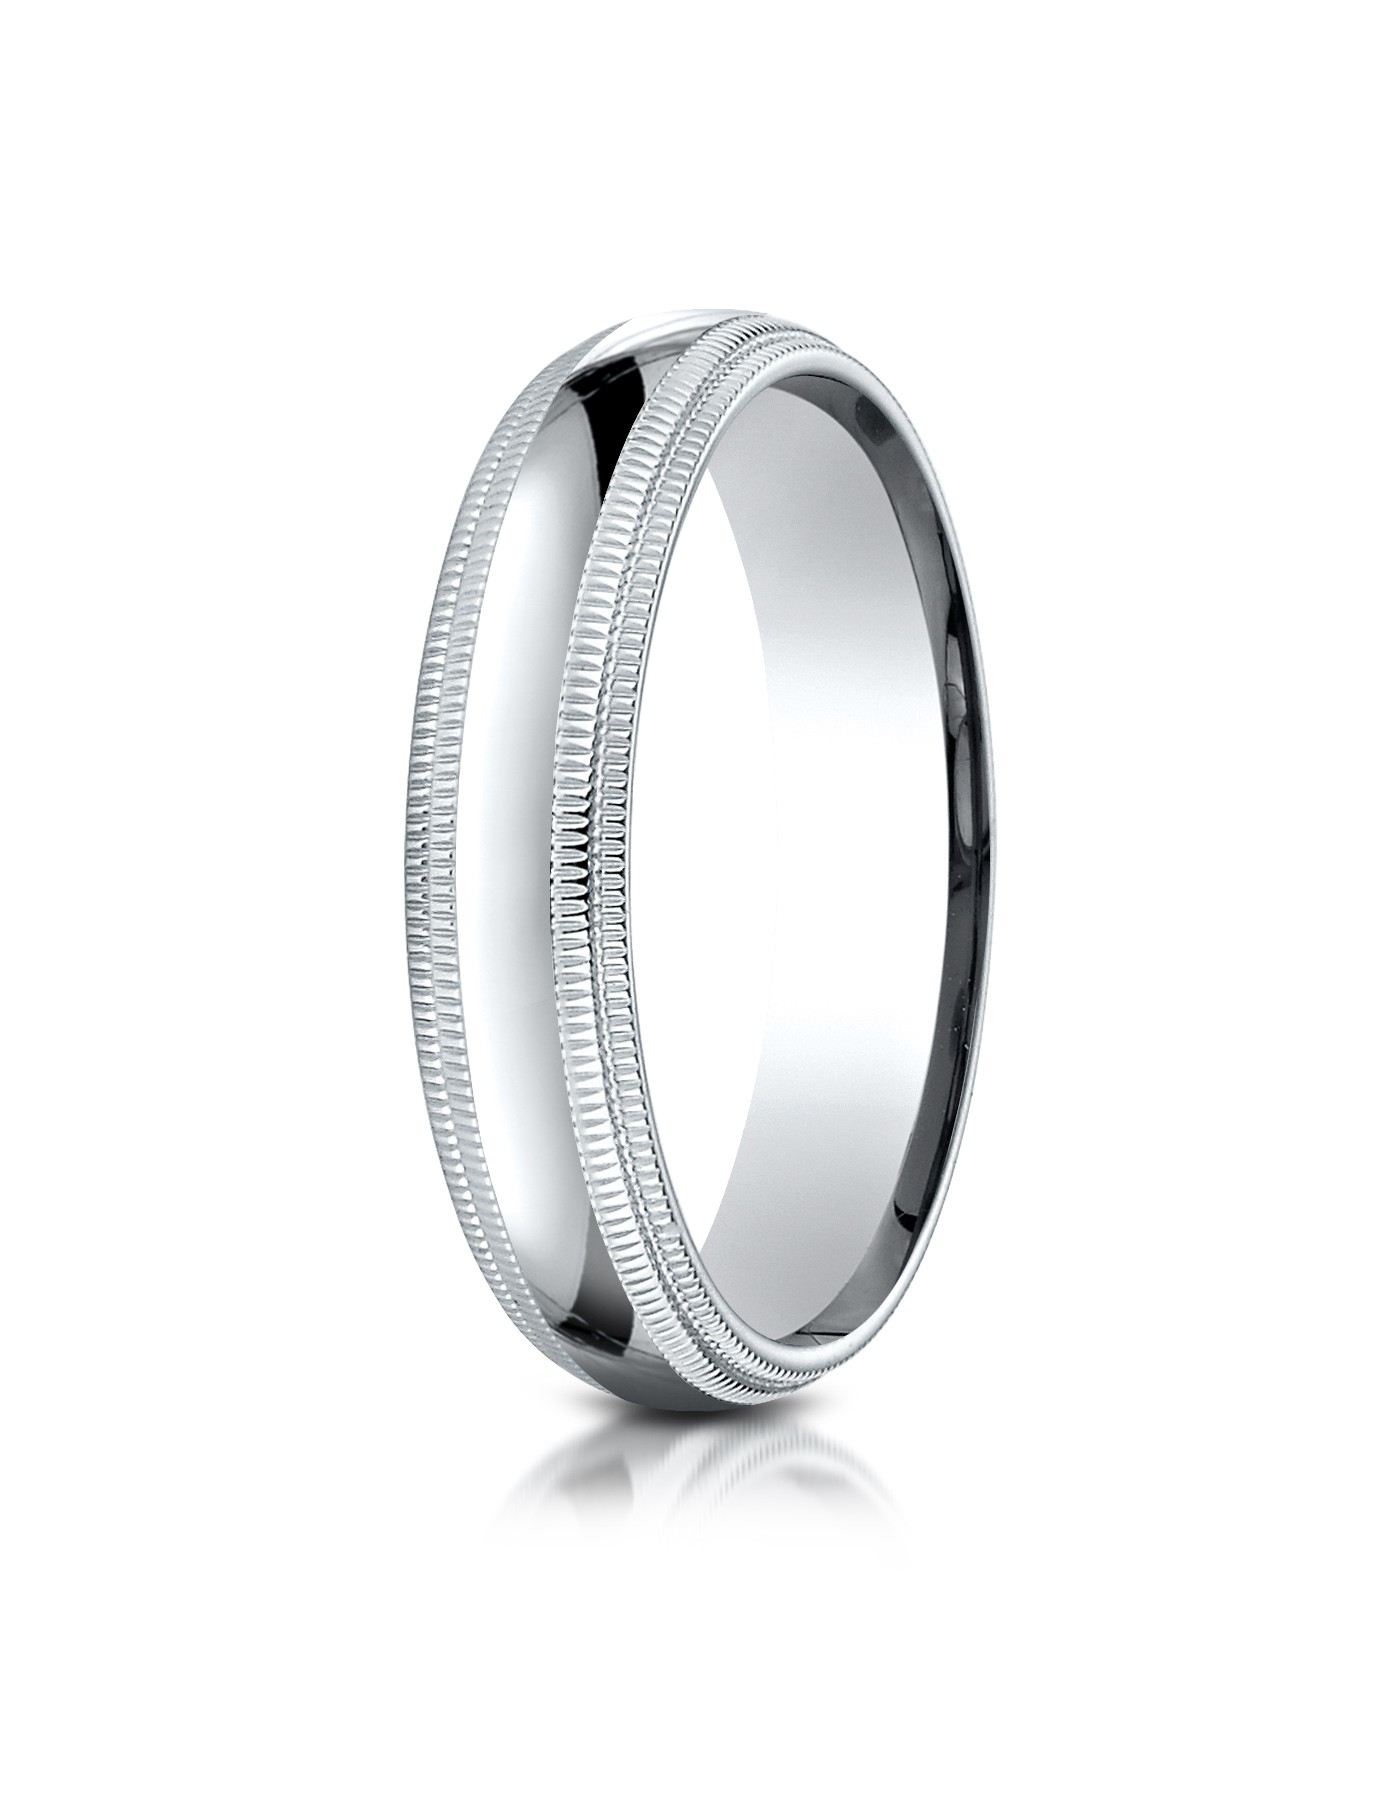 14k White Gold 5mm Slightly Domed Standard Comfort-fit Ring With Double Milgrain